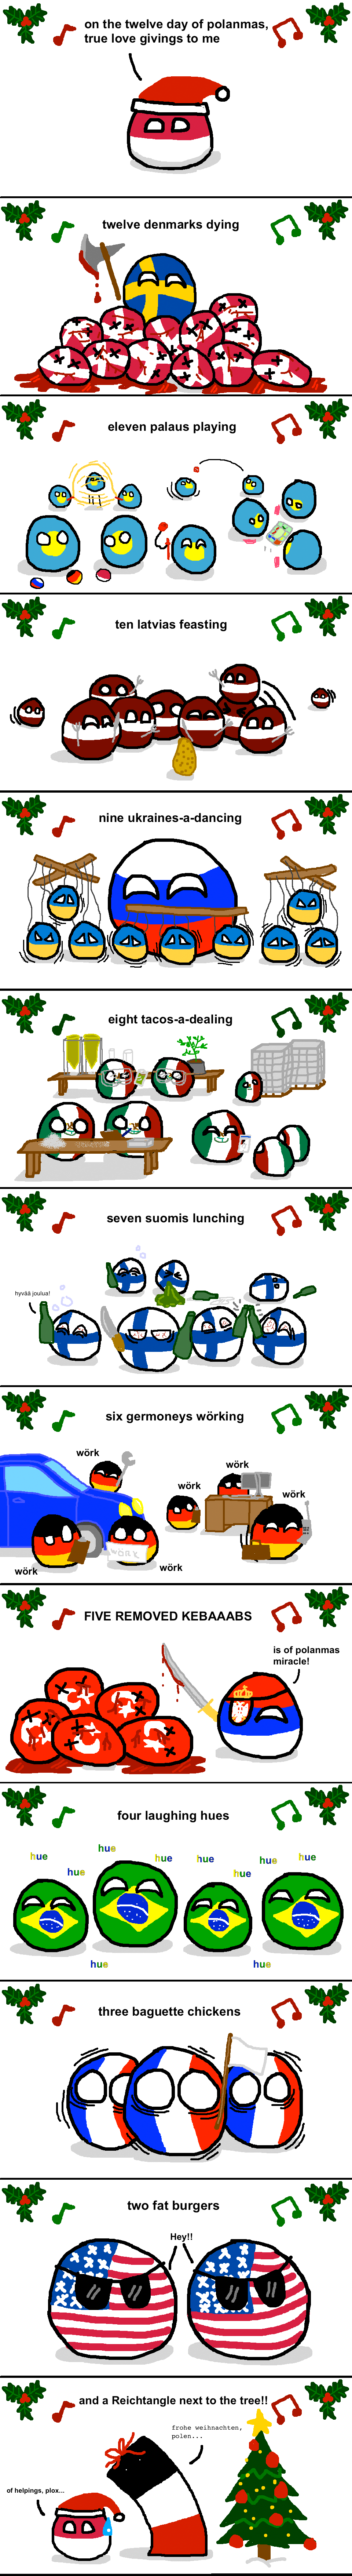 Twelve days of Polanmas